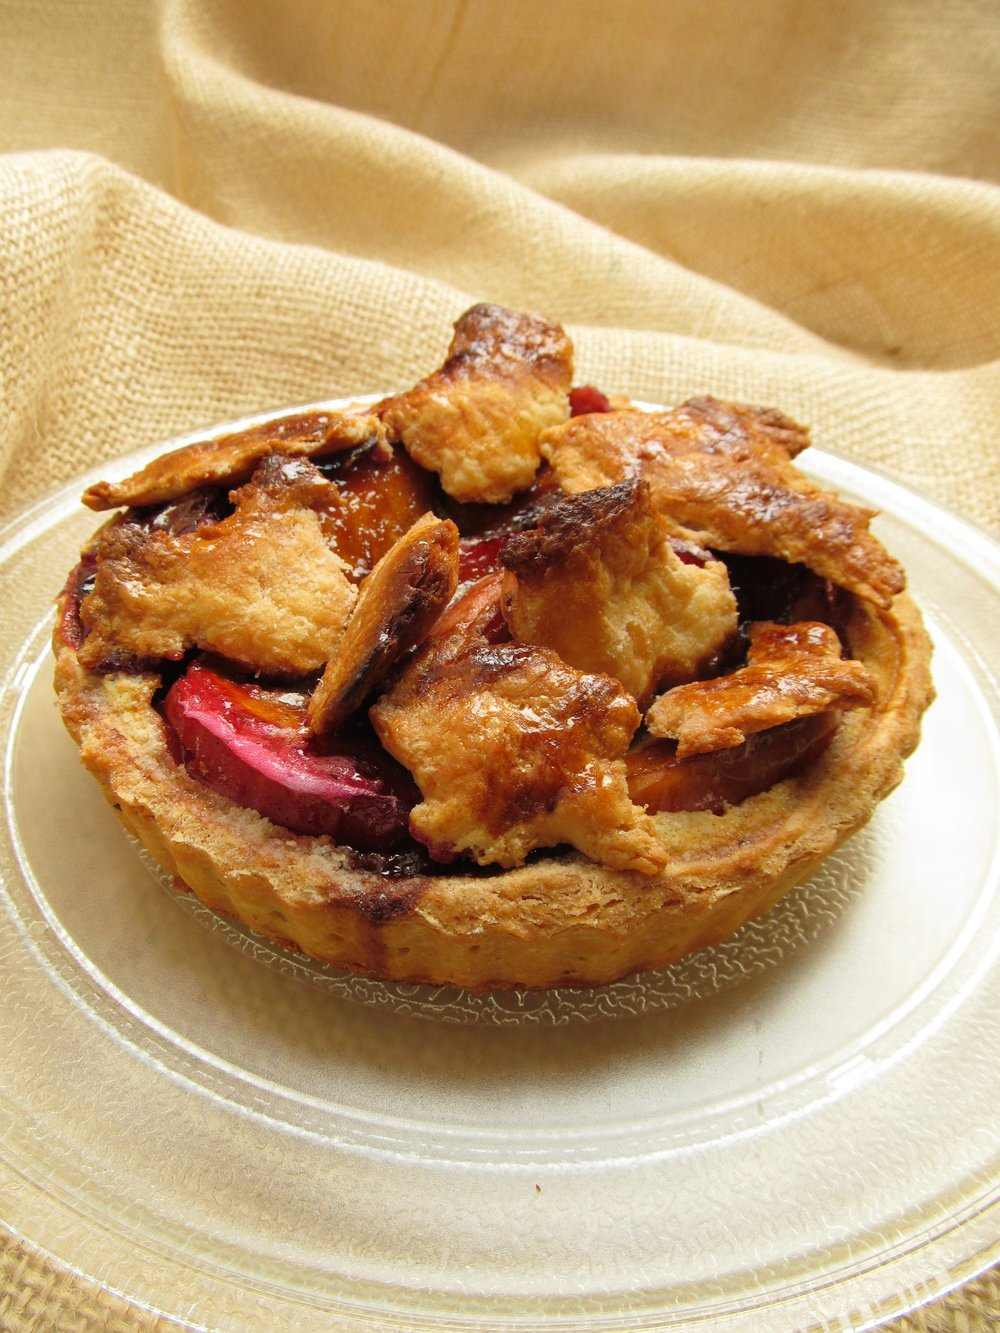 Rhubarb-Apple Tart